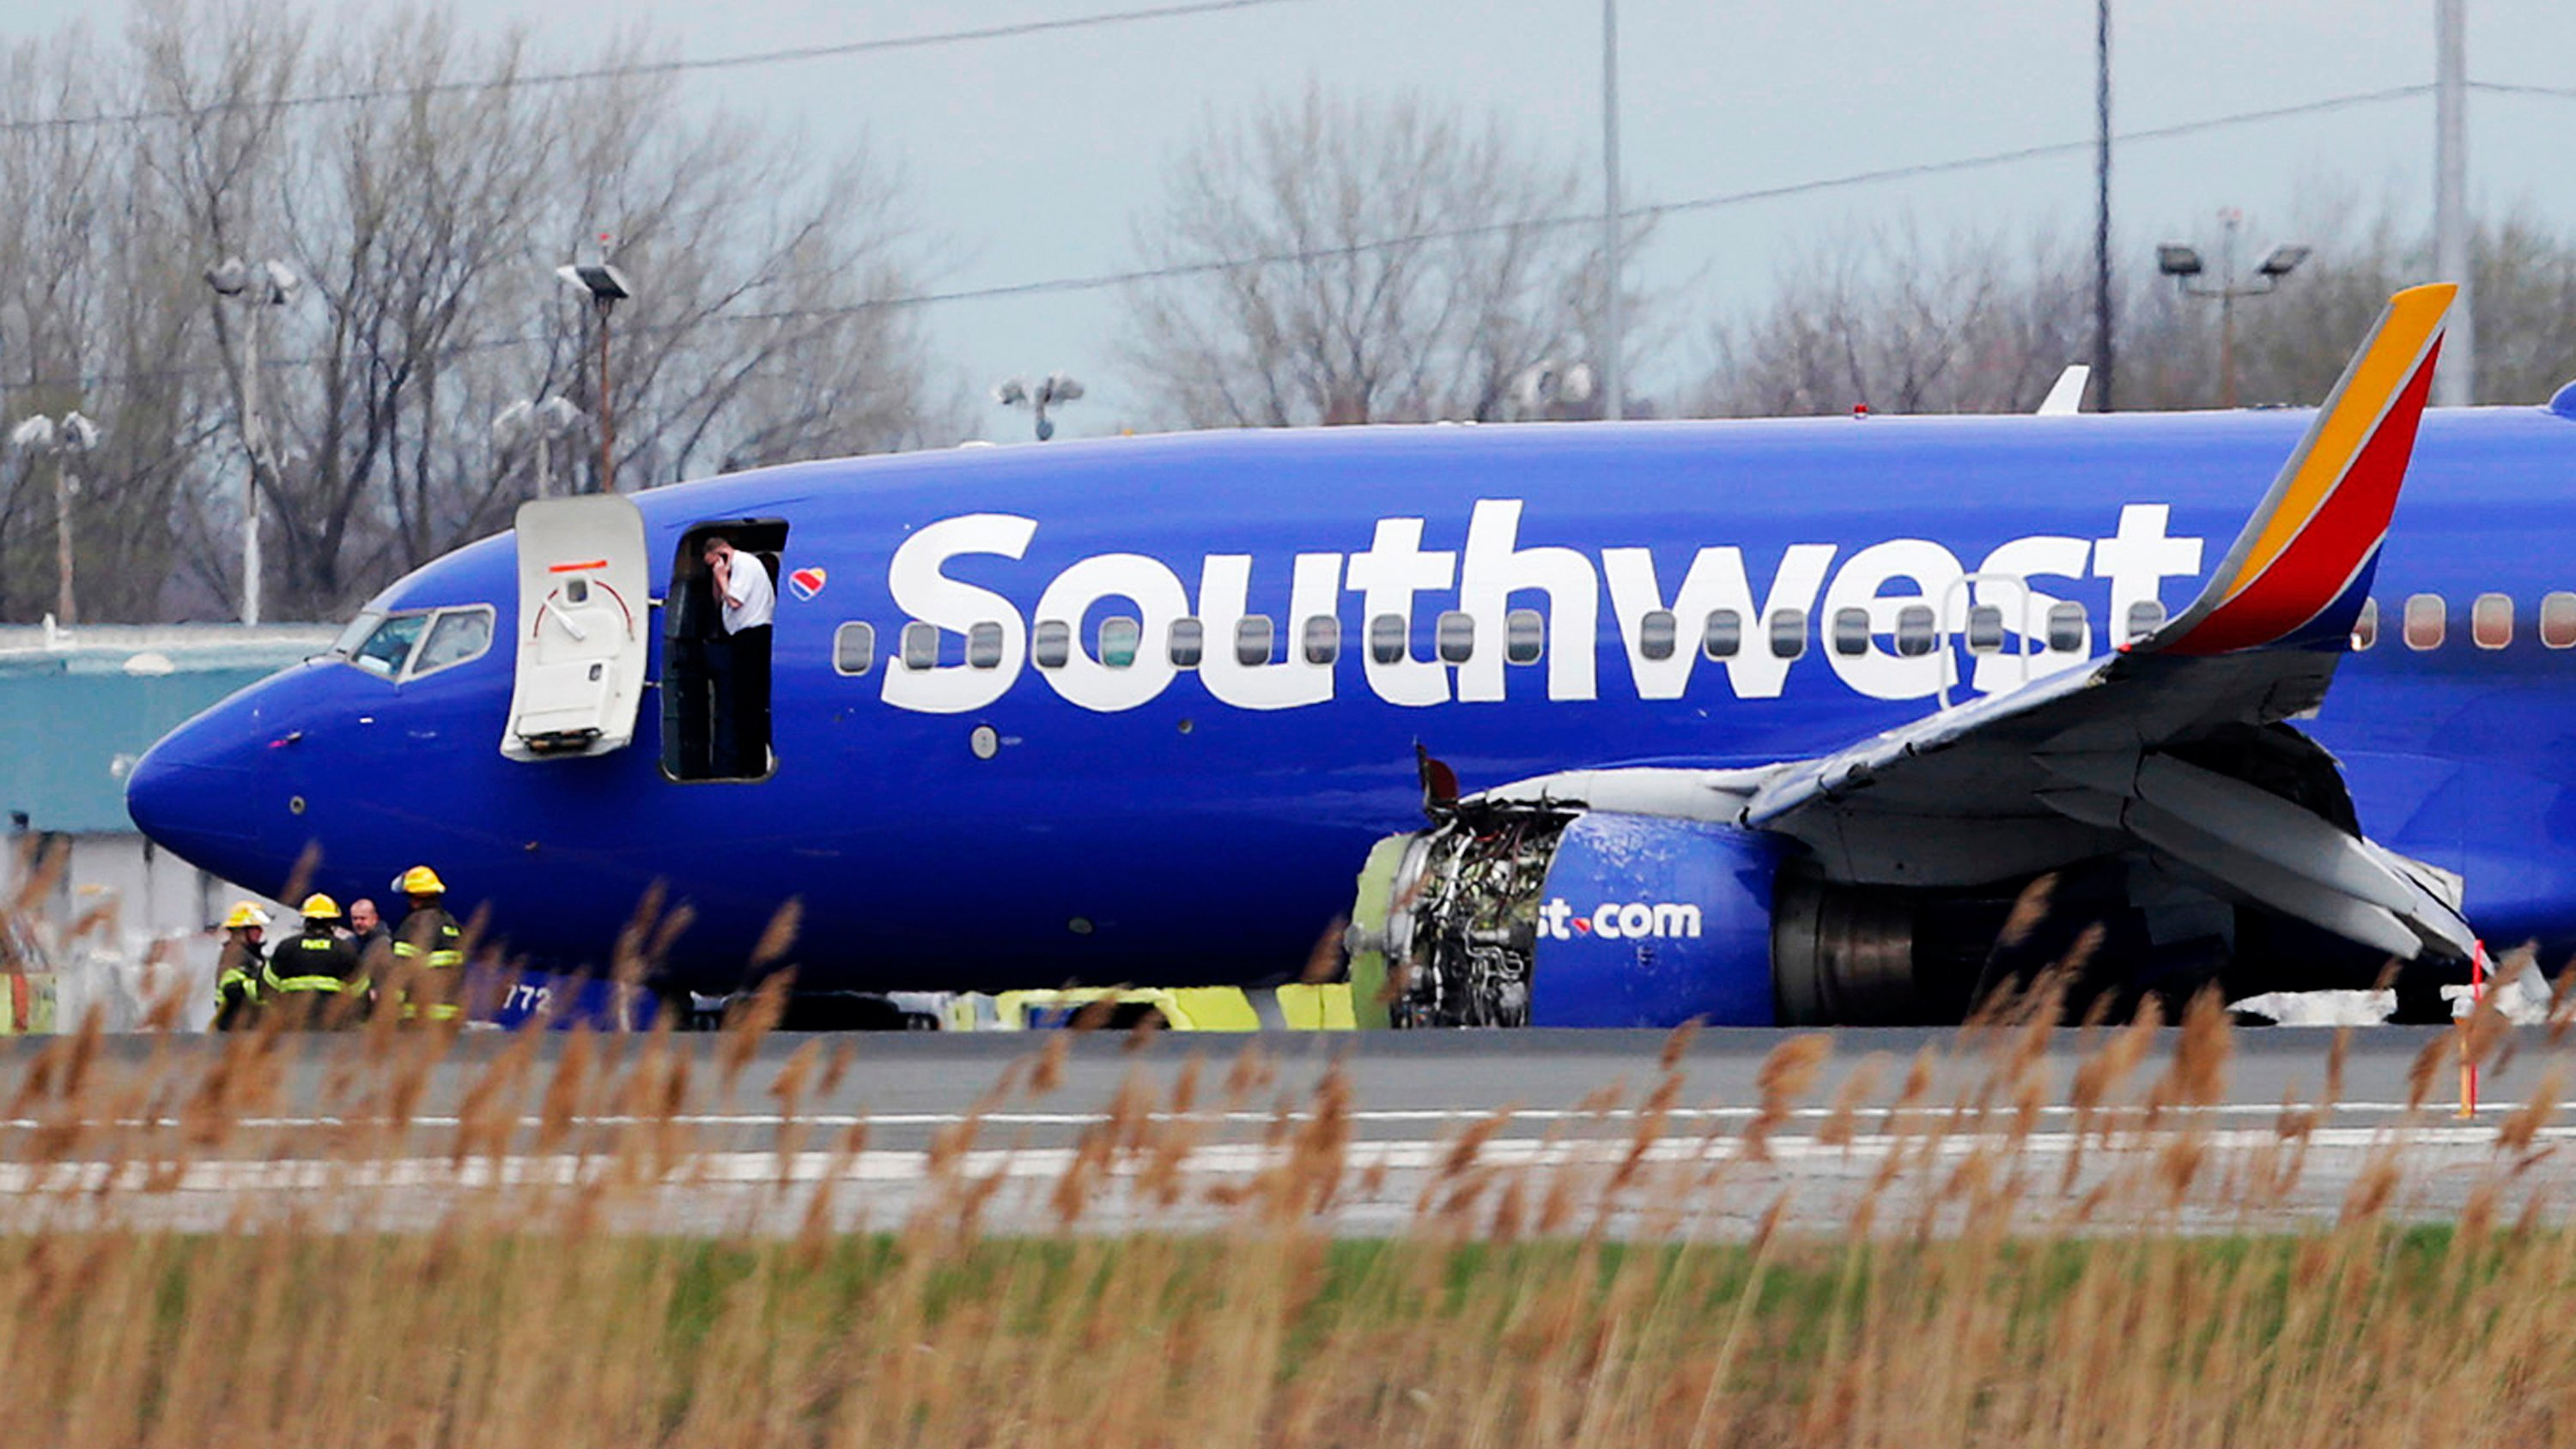 Southwest Airlines sought more time for inspections before Boeing 737's engine exploded